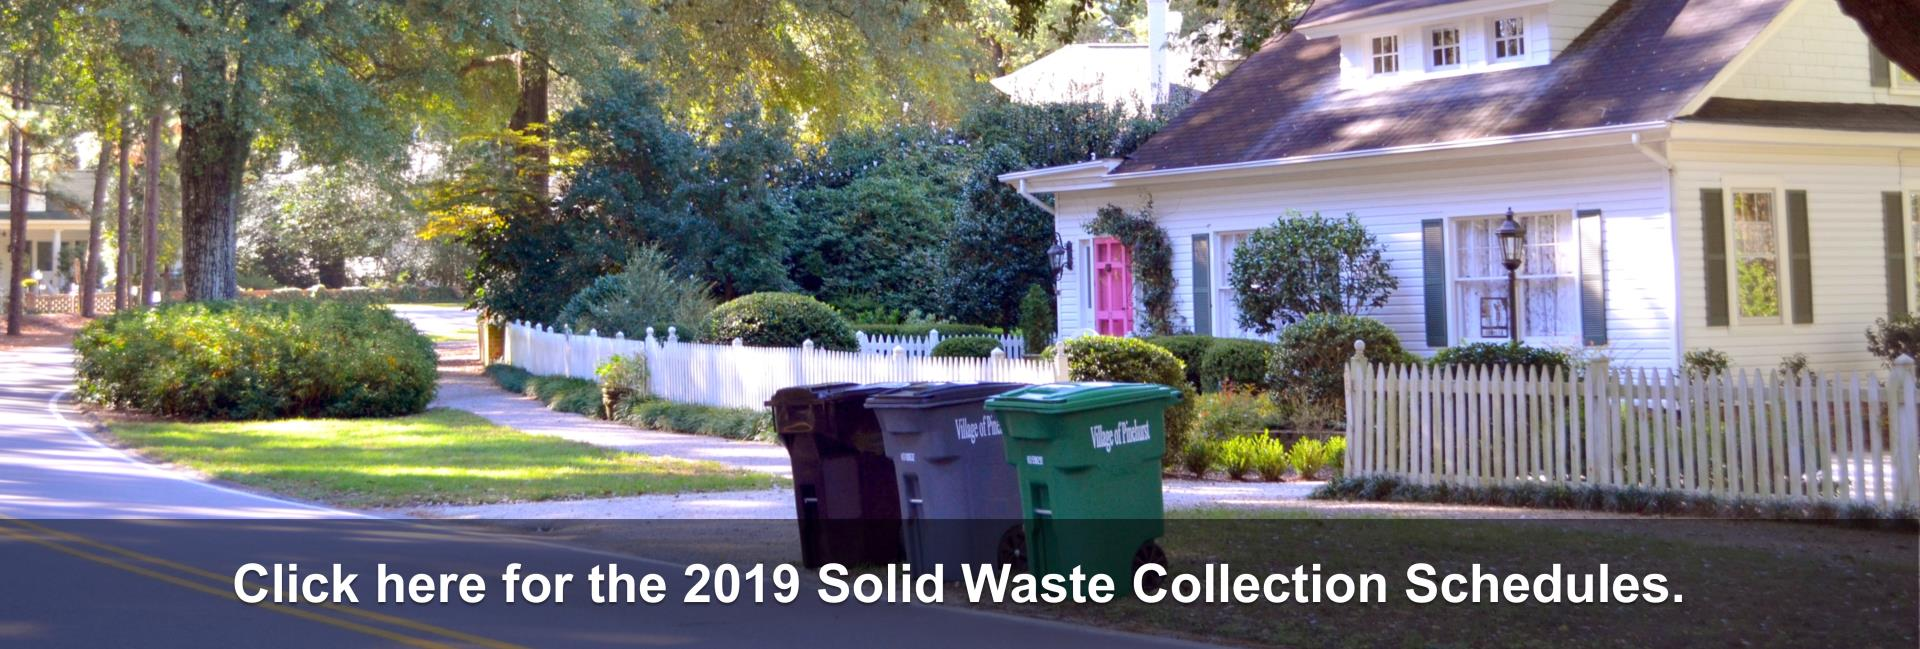 2019 Solid Waste Collection Schedules